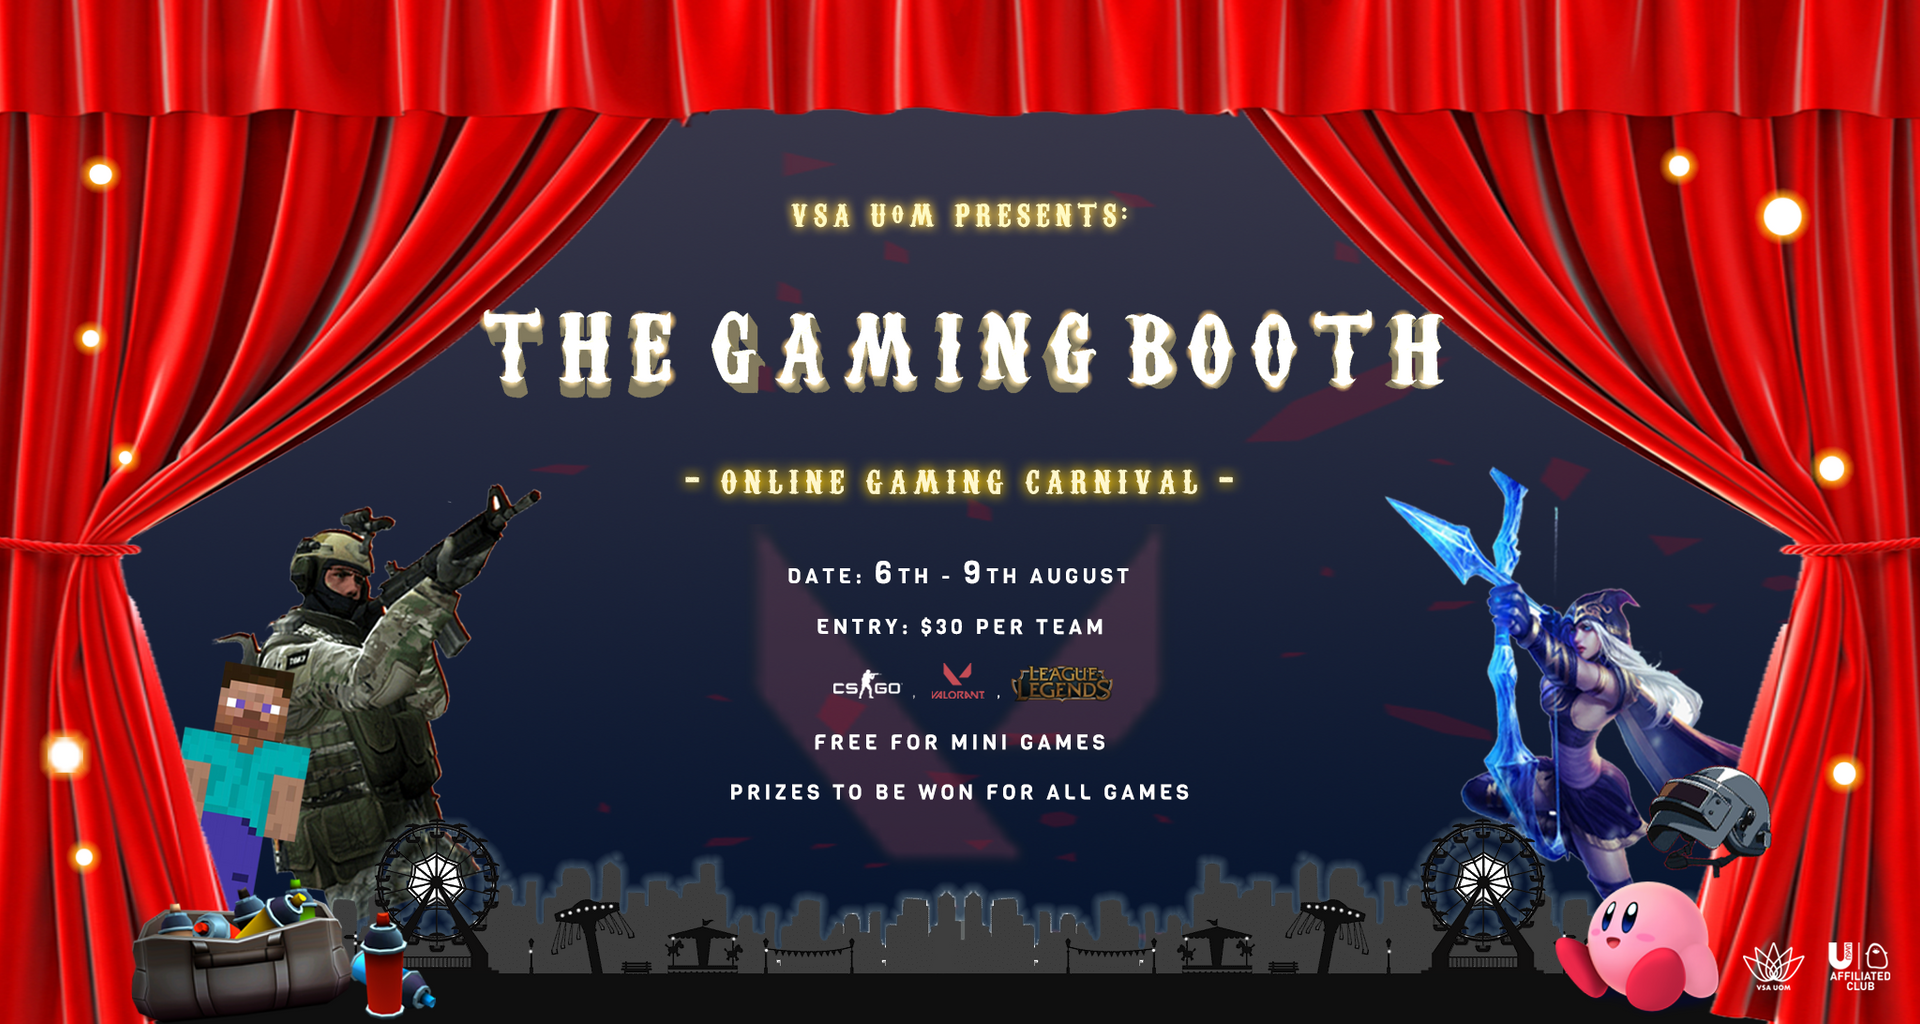 VSA UoM Presents: The Gaming Booth